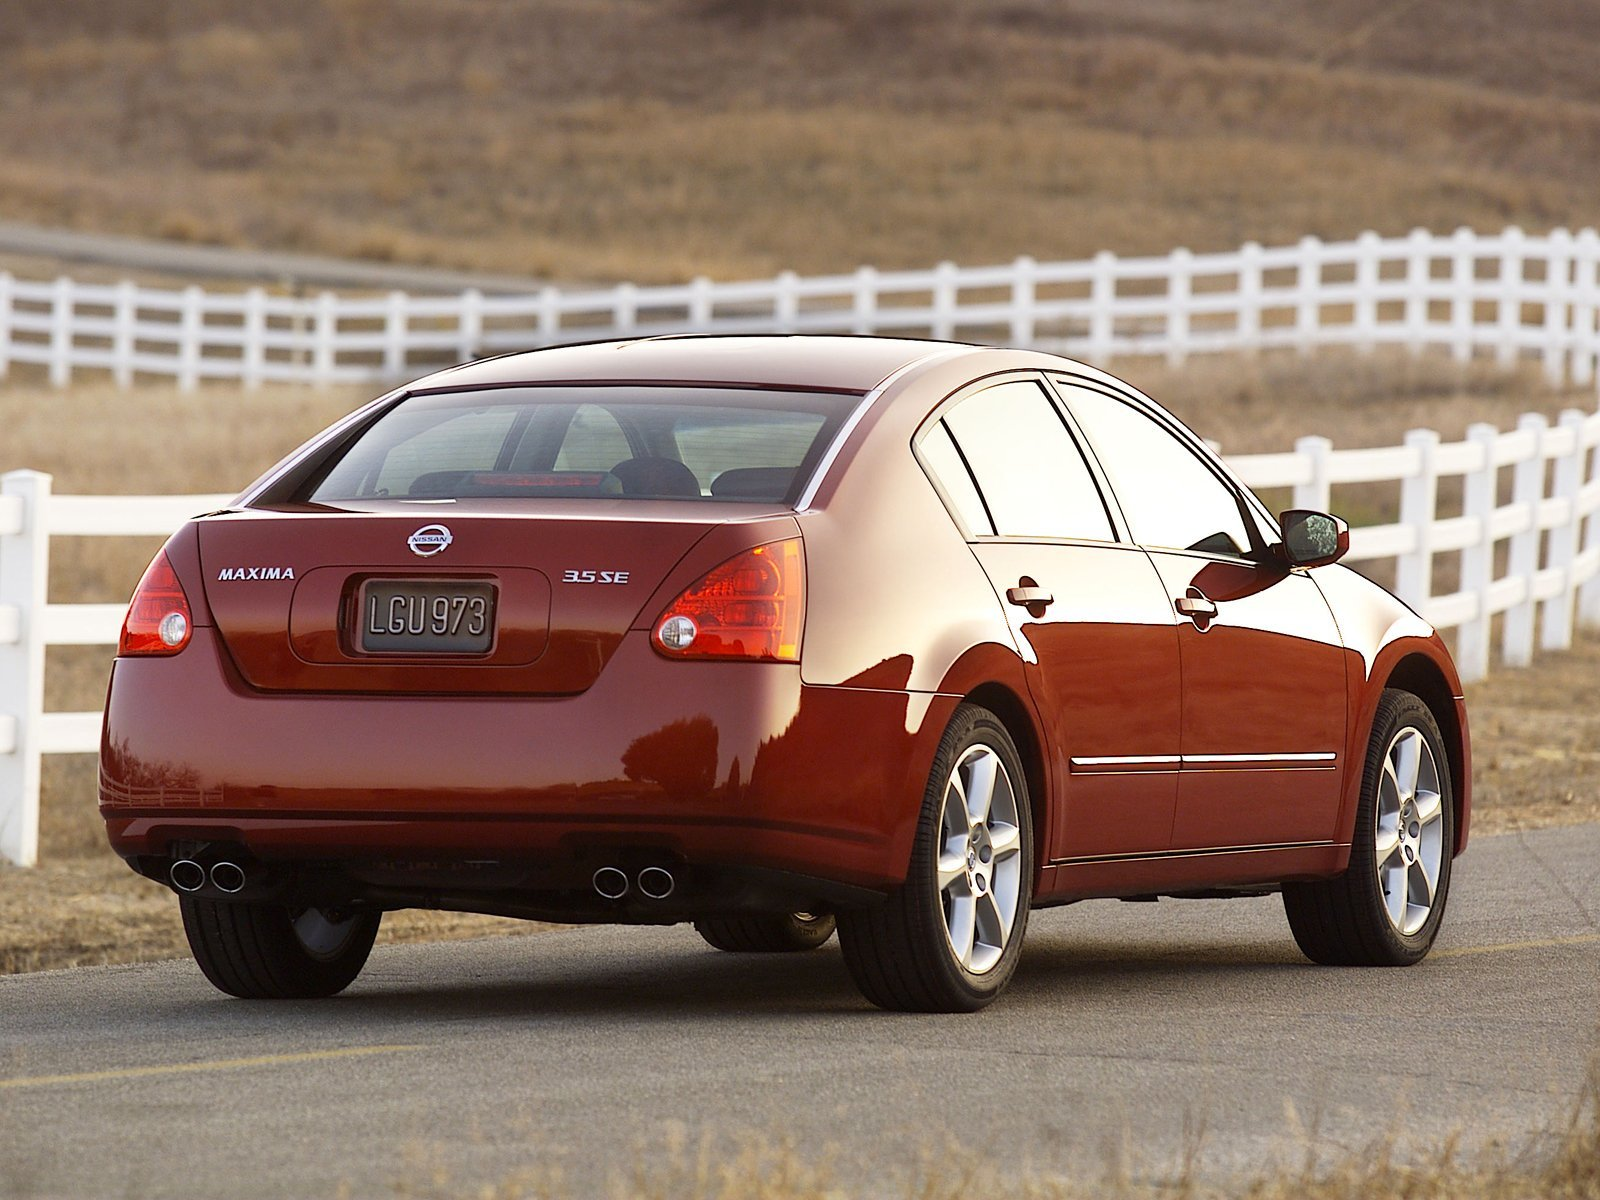 2004 nissan maxima review - top speed